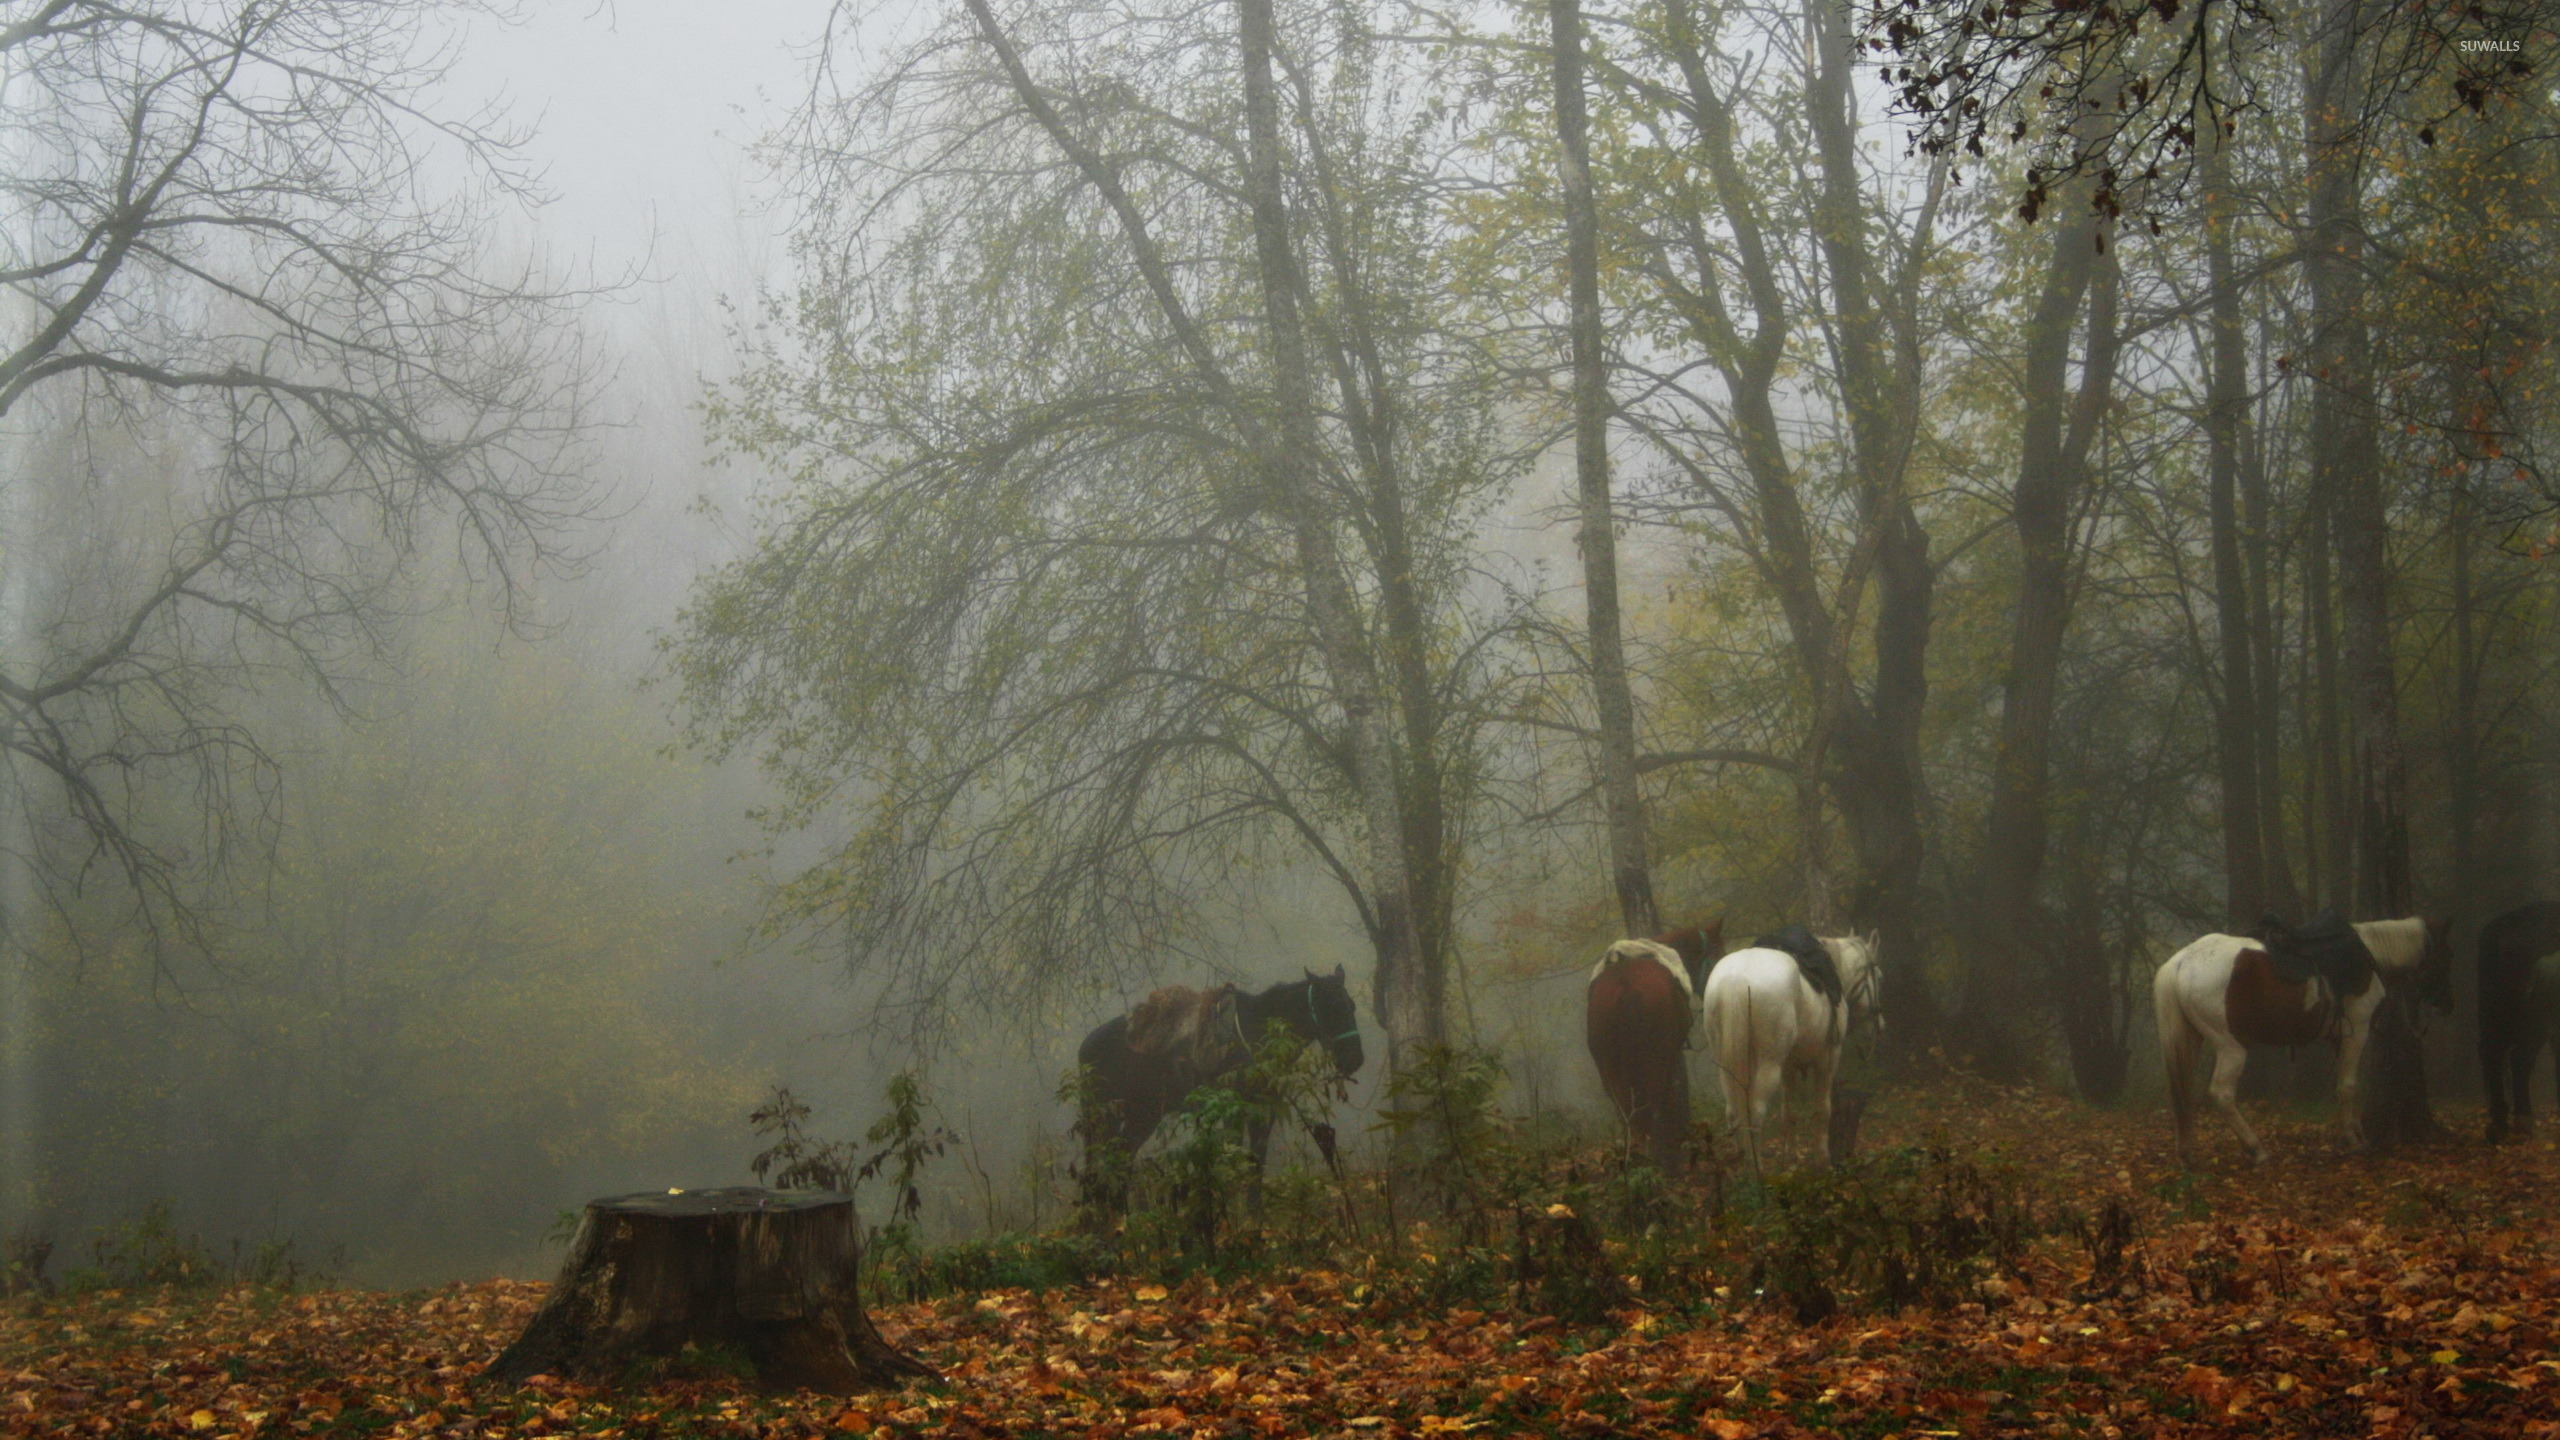 horses in a foggy forest wallpaper animal wallpapers